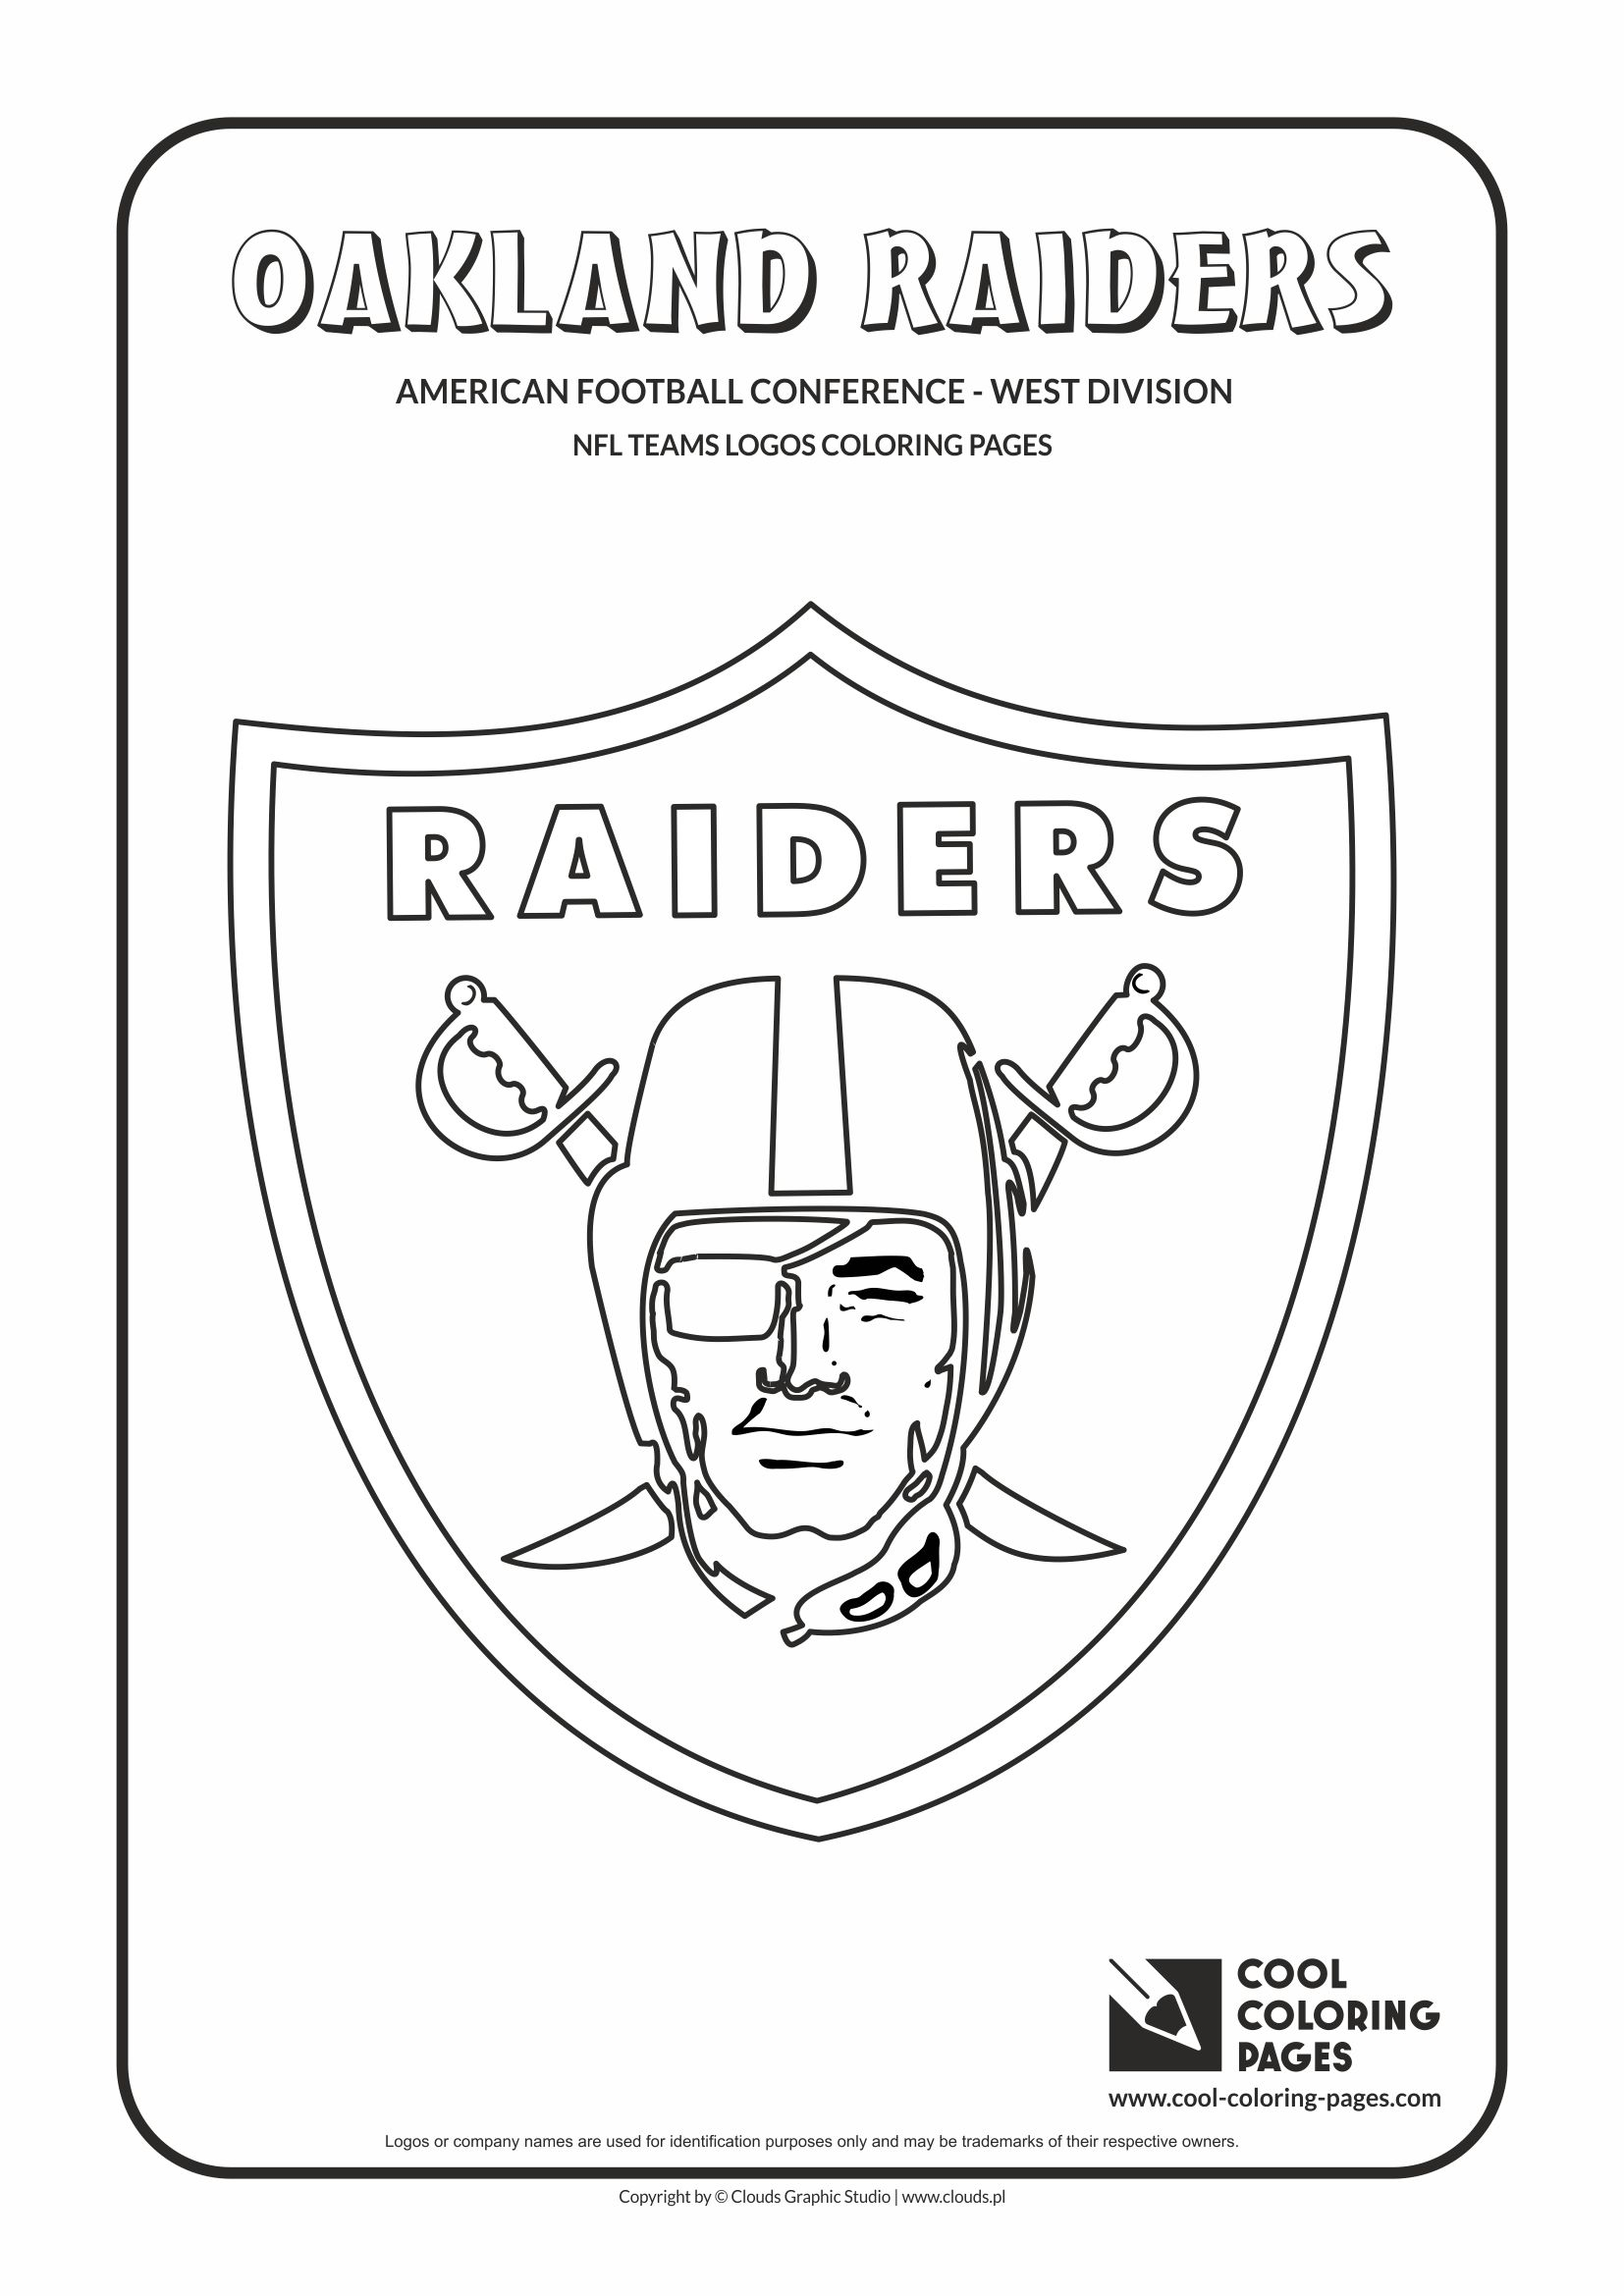 Cool Coloring Pages - NFL American Football Clubs Logos - American Football Conference - West Division / Oakland Raiders logo / Coloring page with Oakland Raiders logo